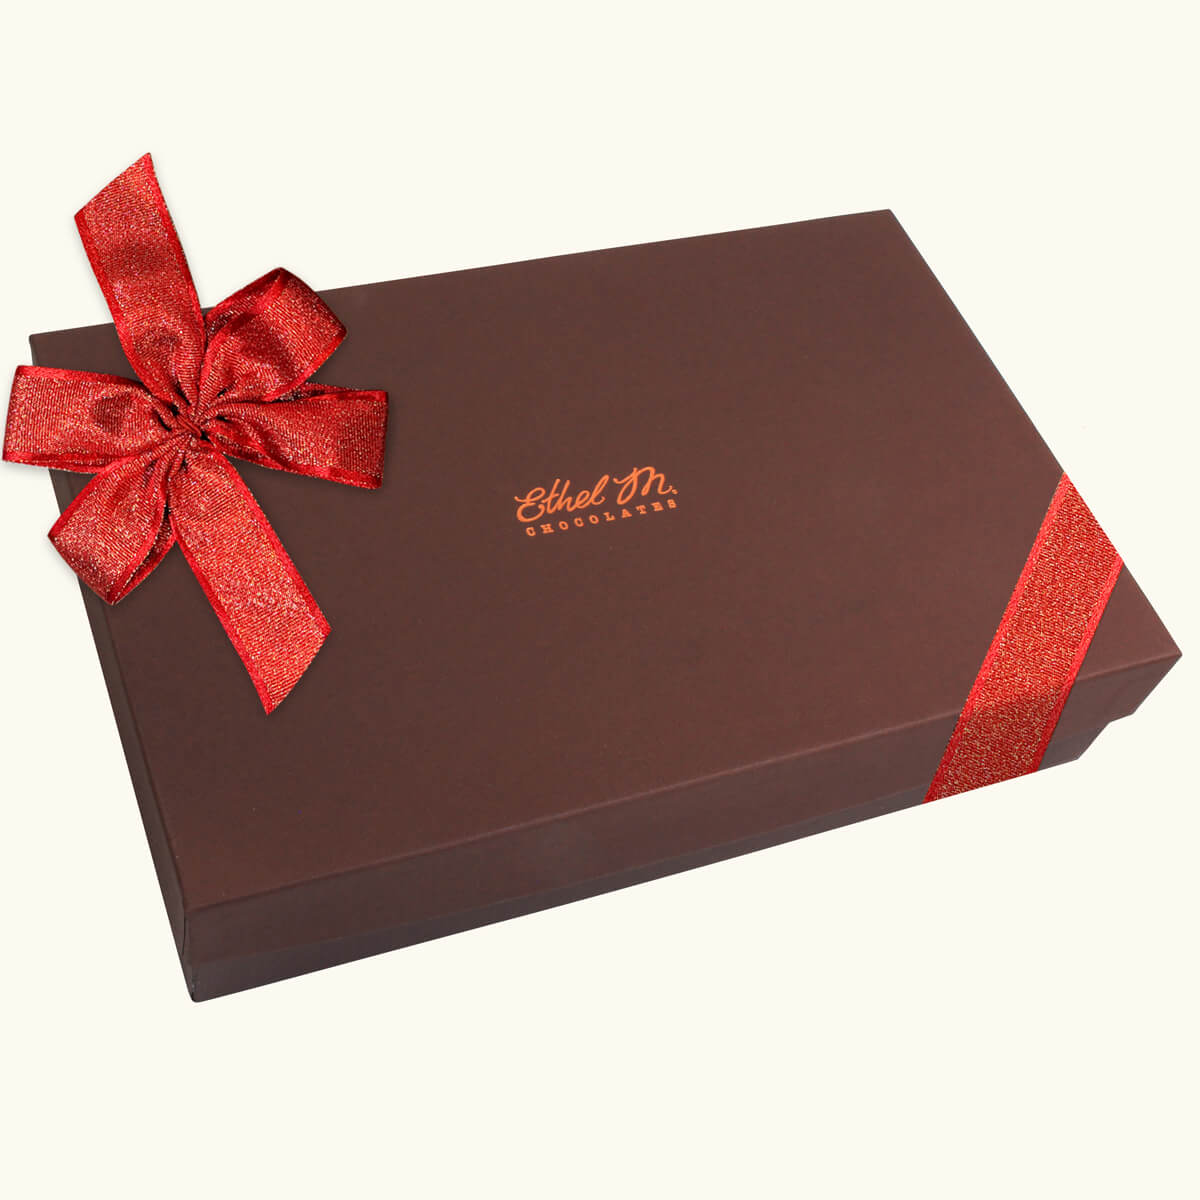 Design Your Own RED RIBBON Chocolate Assortment, Two-Layer Collection with Premium Red Ribbon, 40-80 Total Pieces